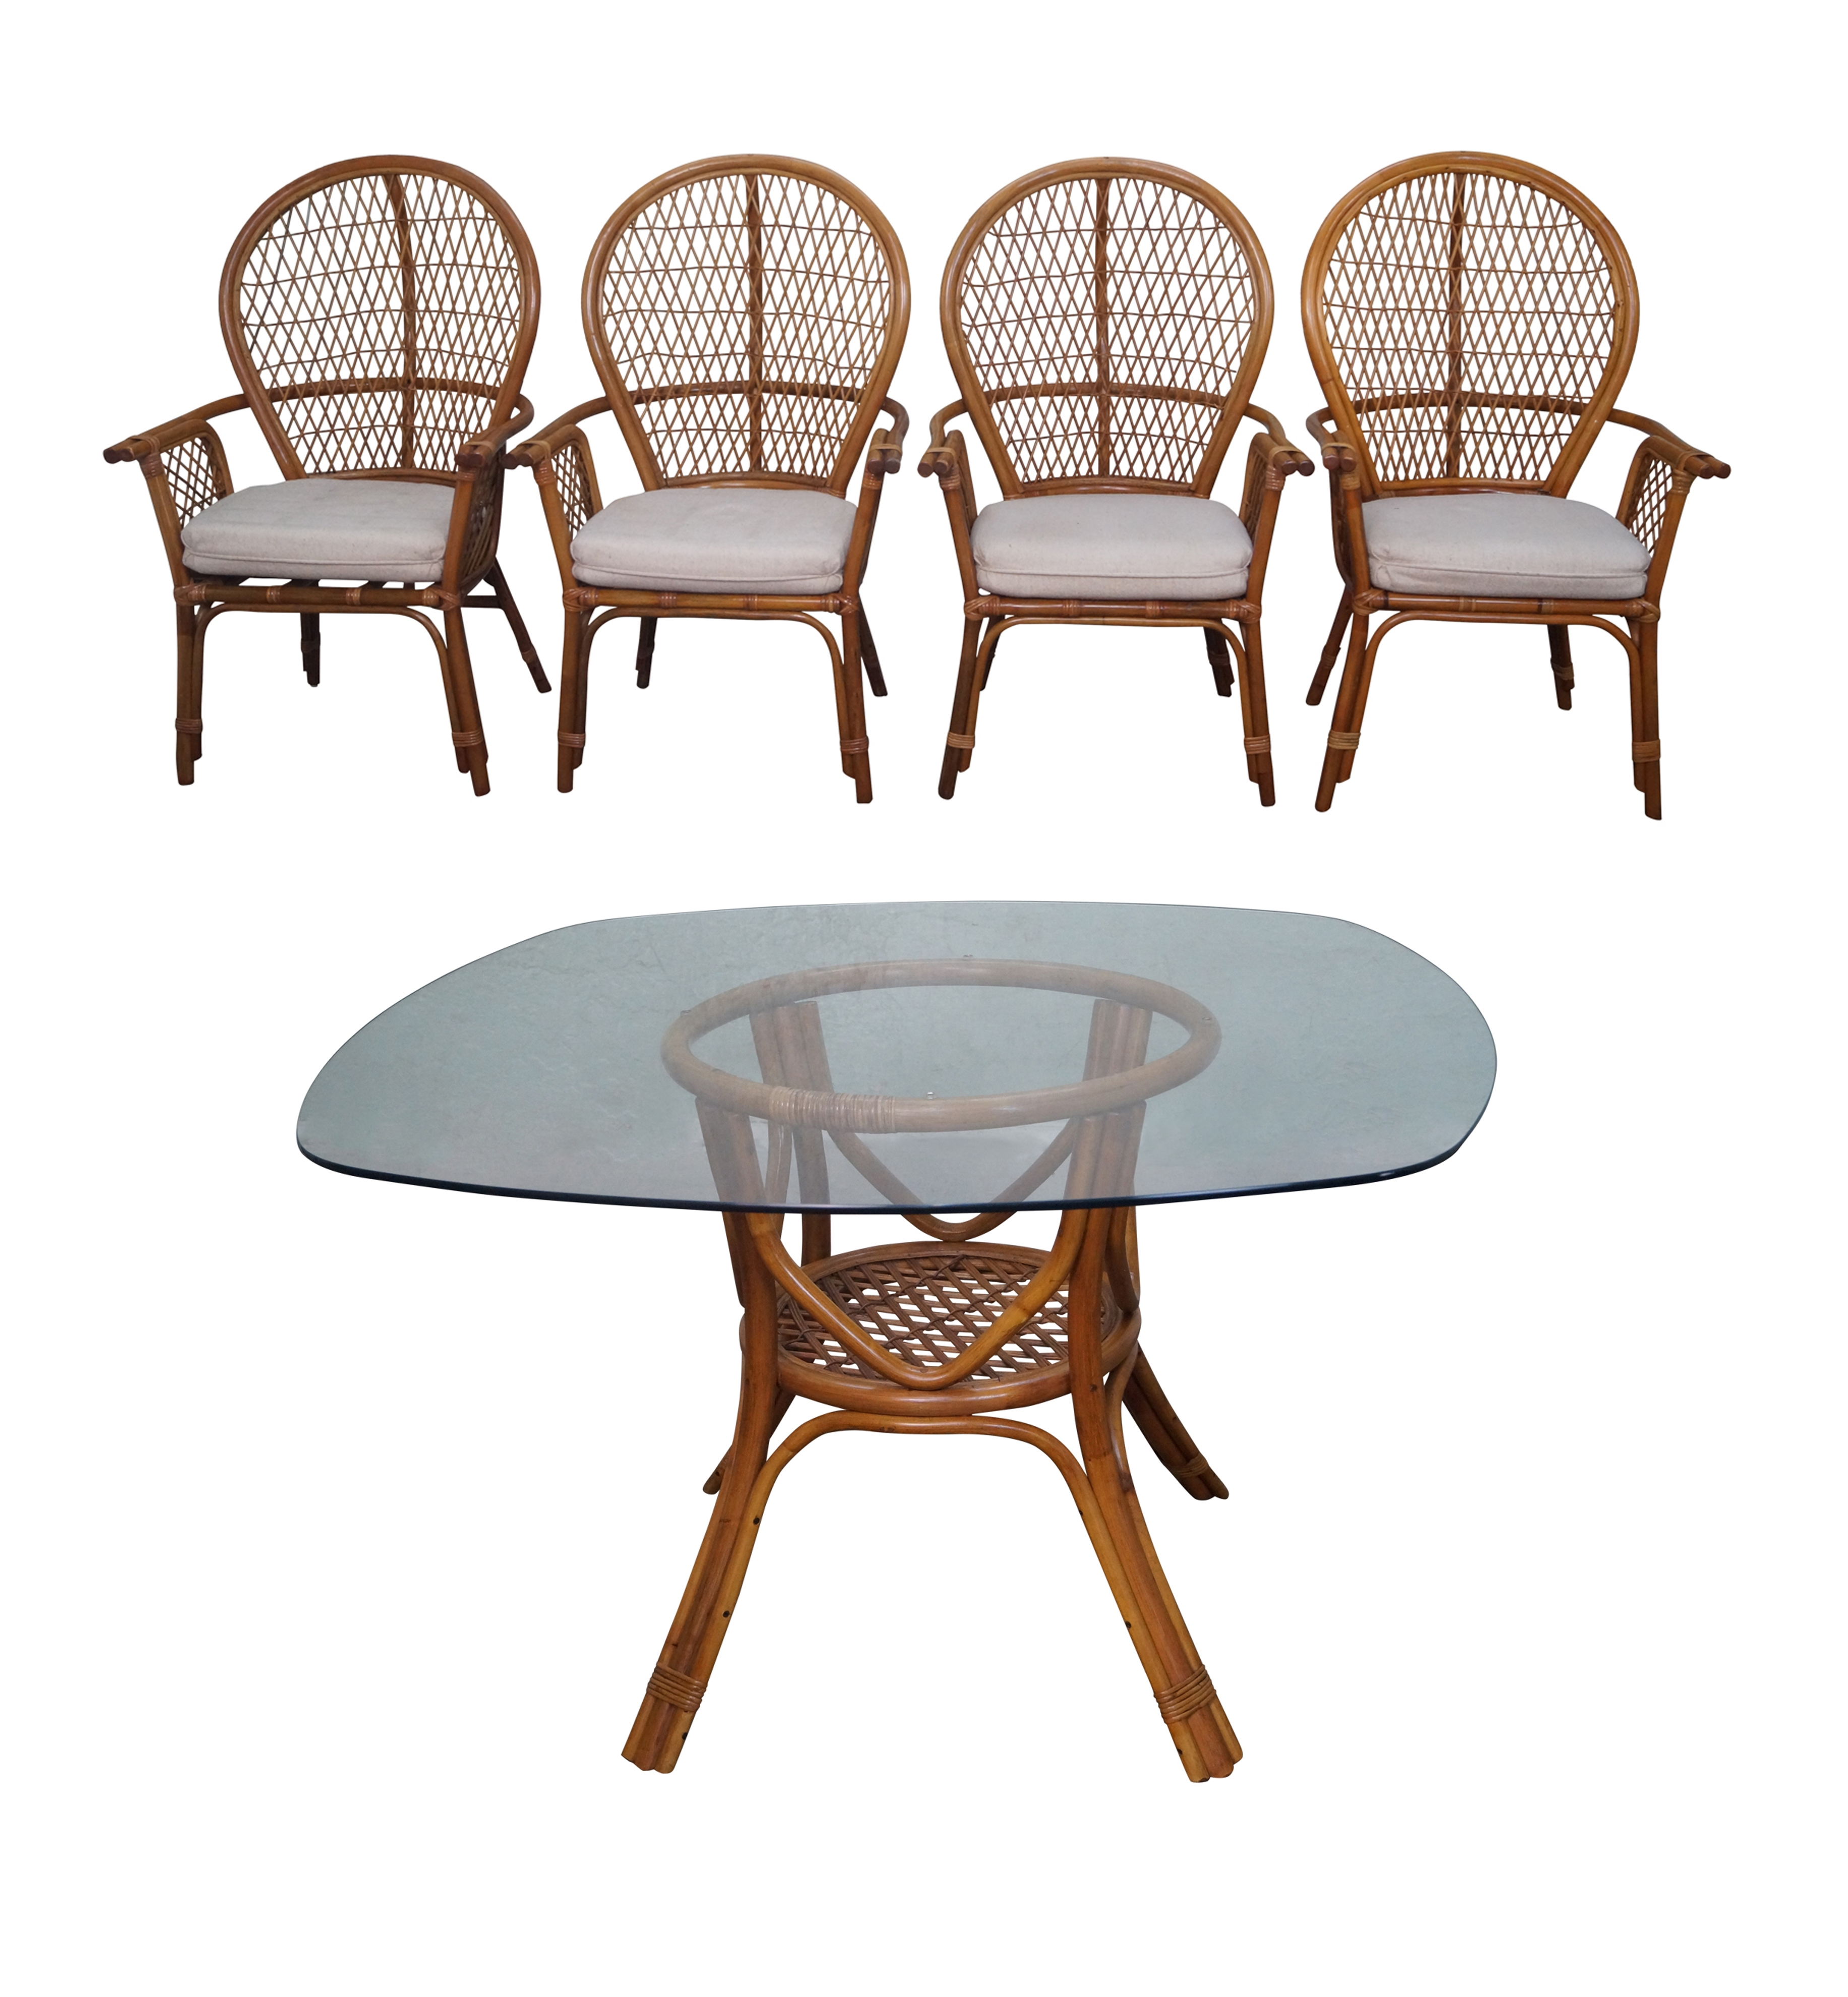 Most Recent Vintage Rattan Glass Top Dining Table & Chair Set Age/country Of Inside Wicker And Glass Dining Tables (View 7 of 25)